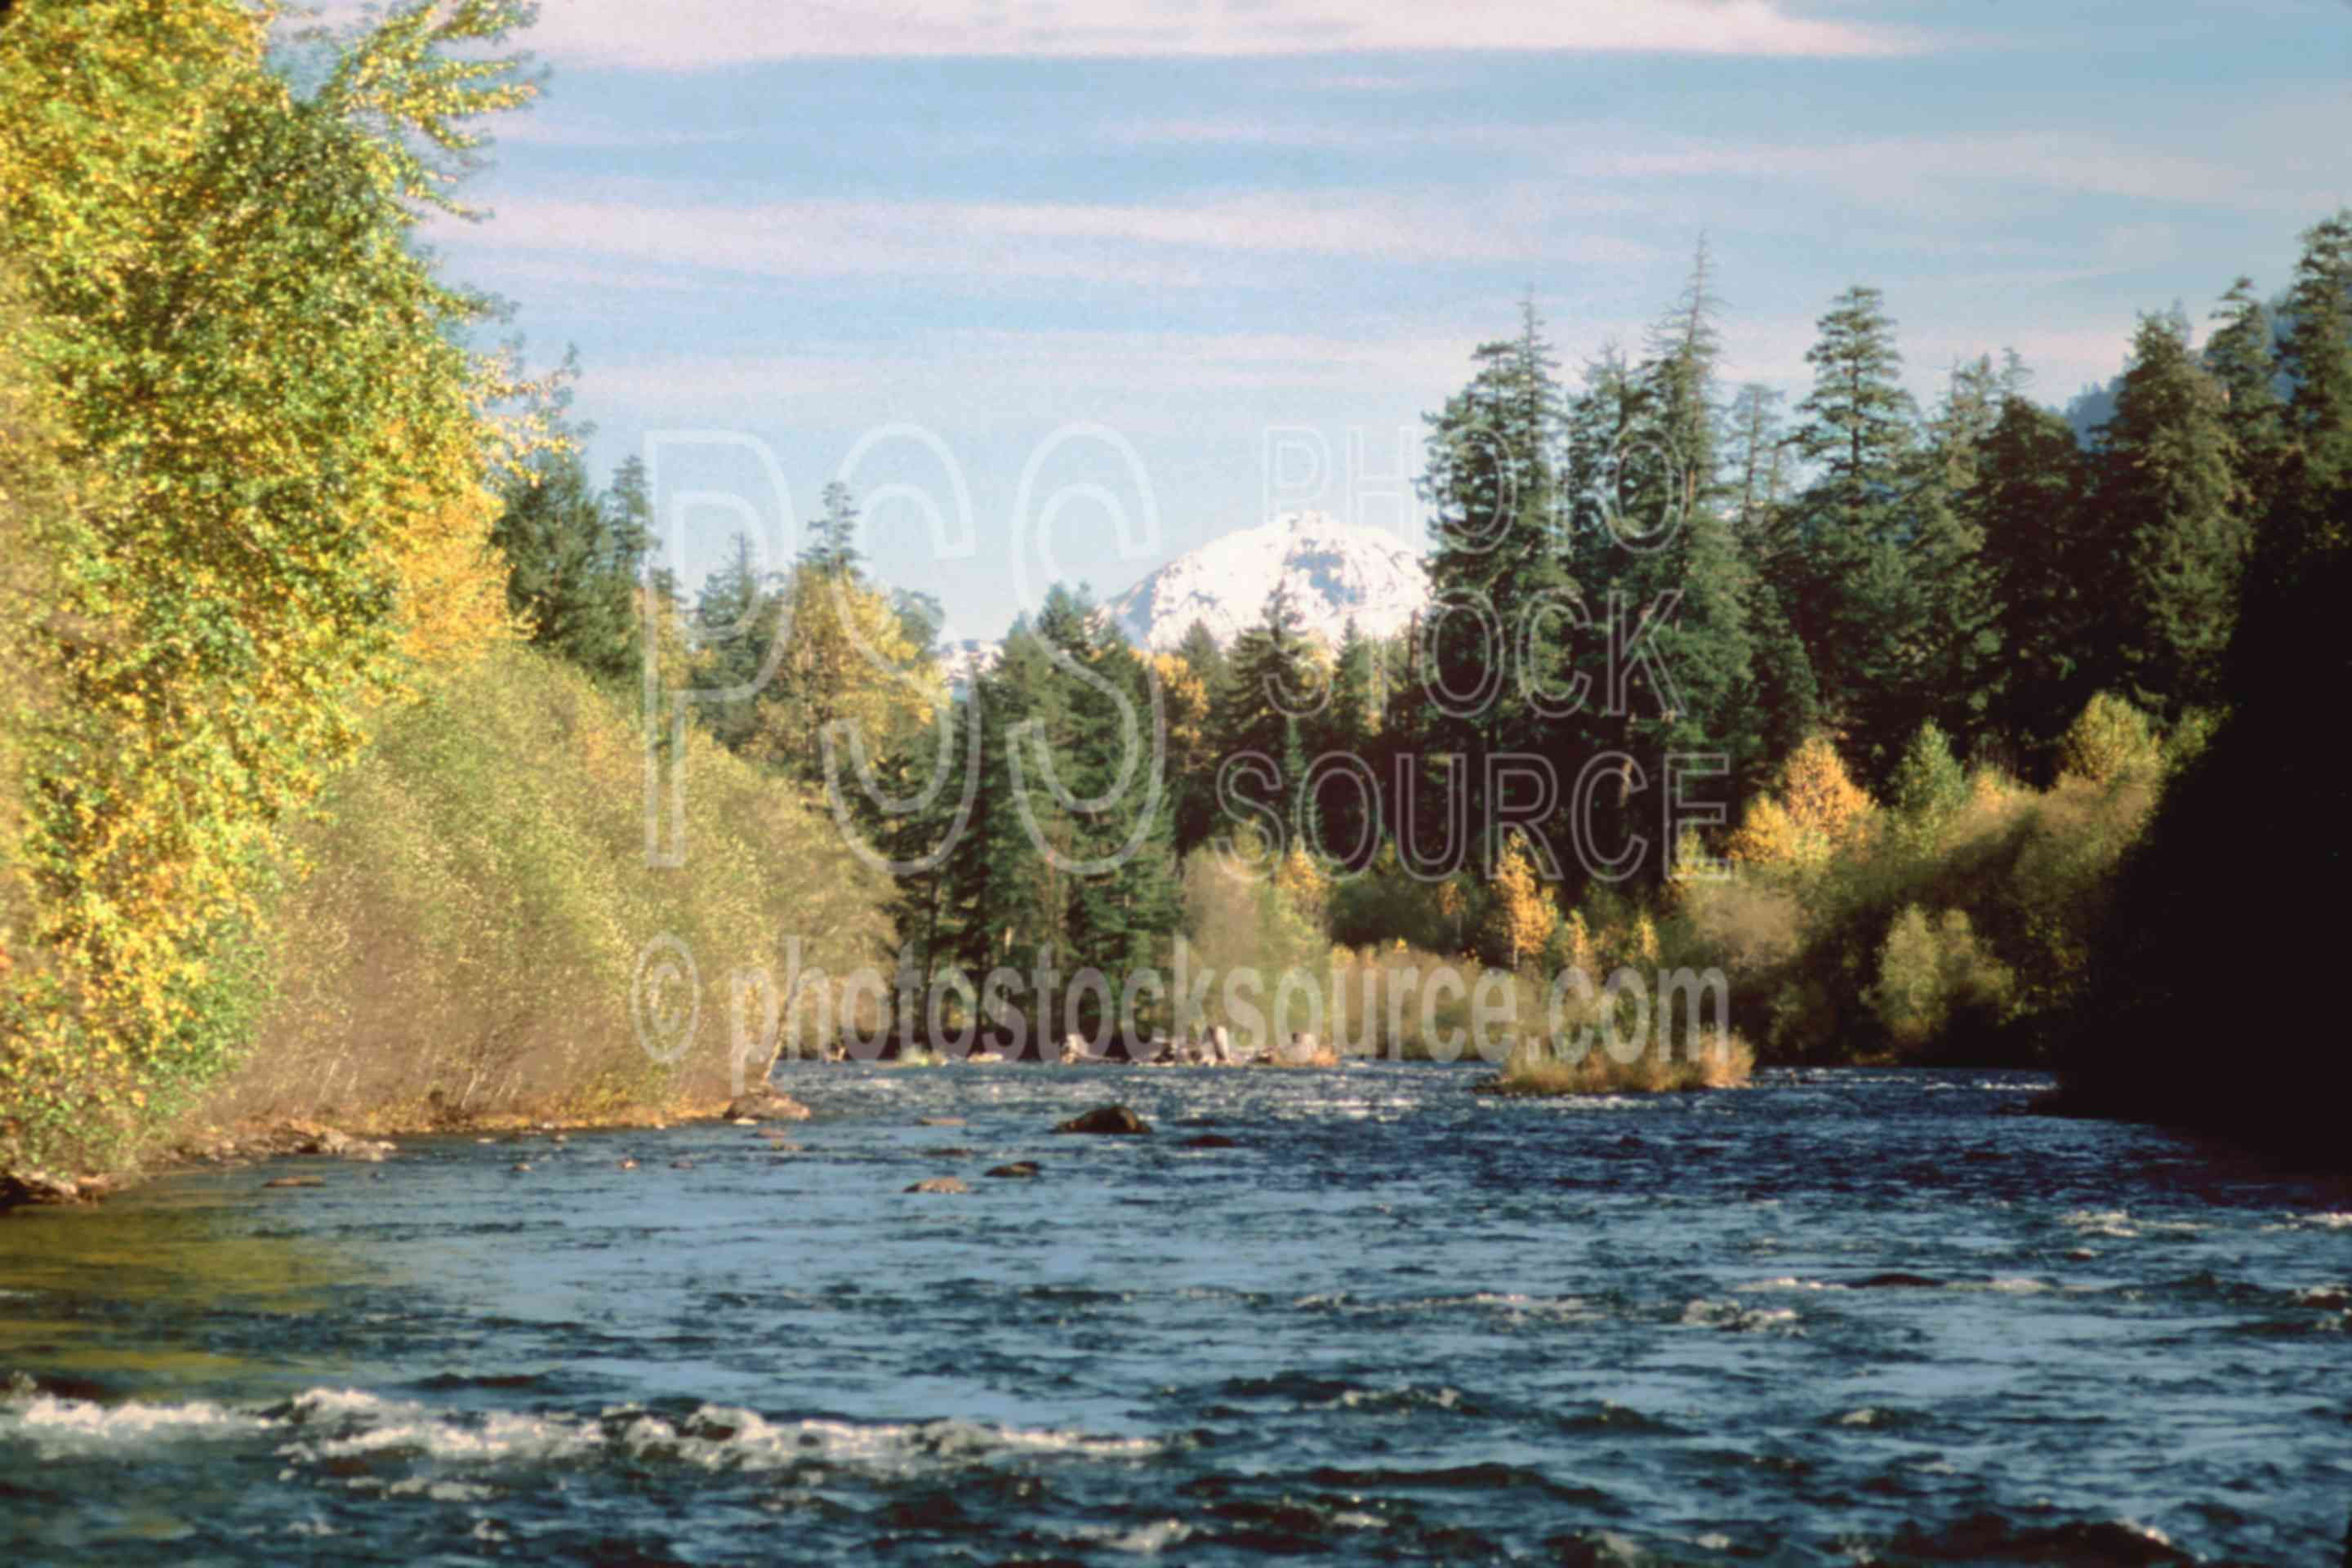 North Sister, McKenzie River,mckenzie river,north sister,river,usas,lakes rivers,mountains